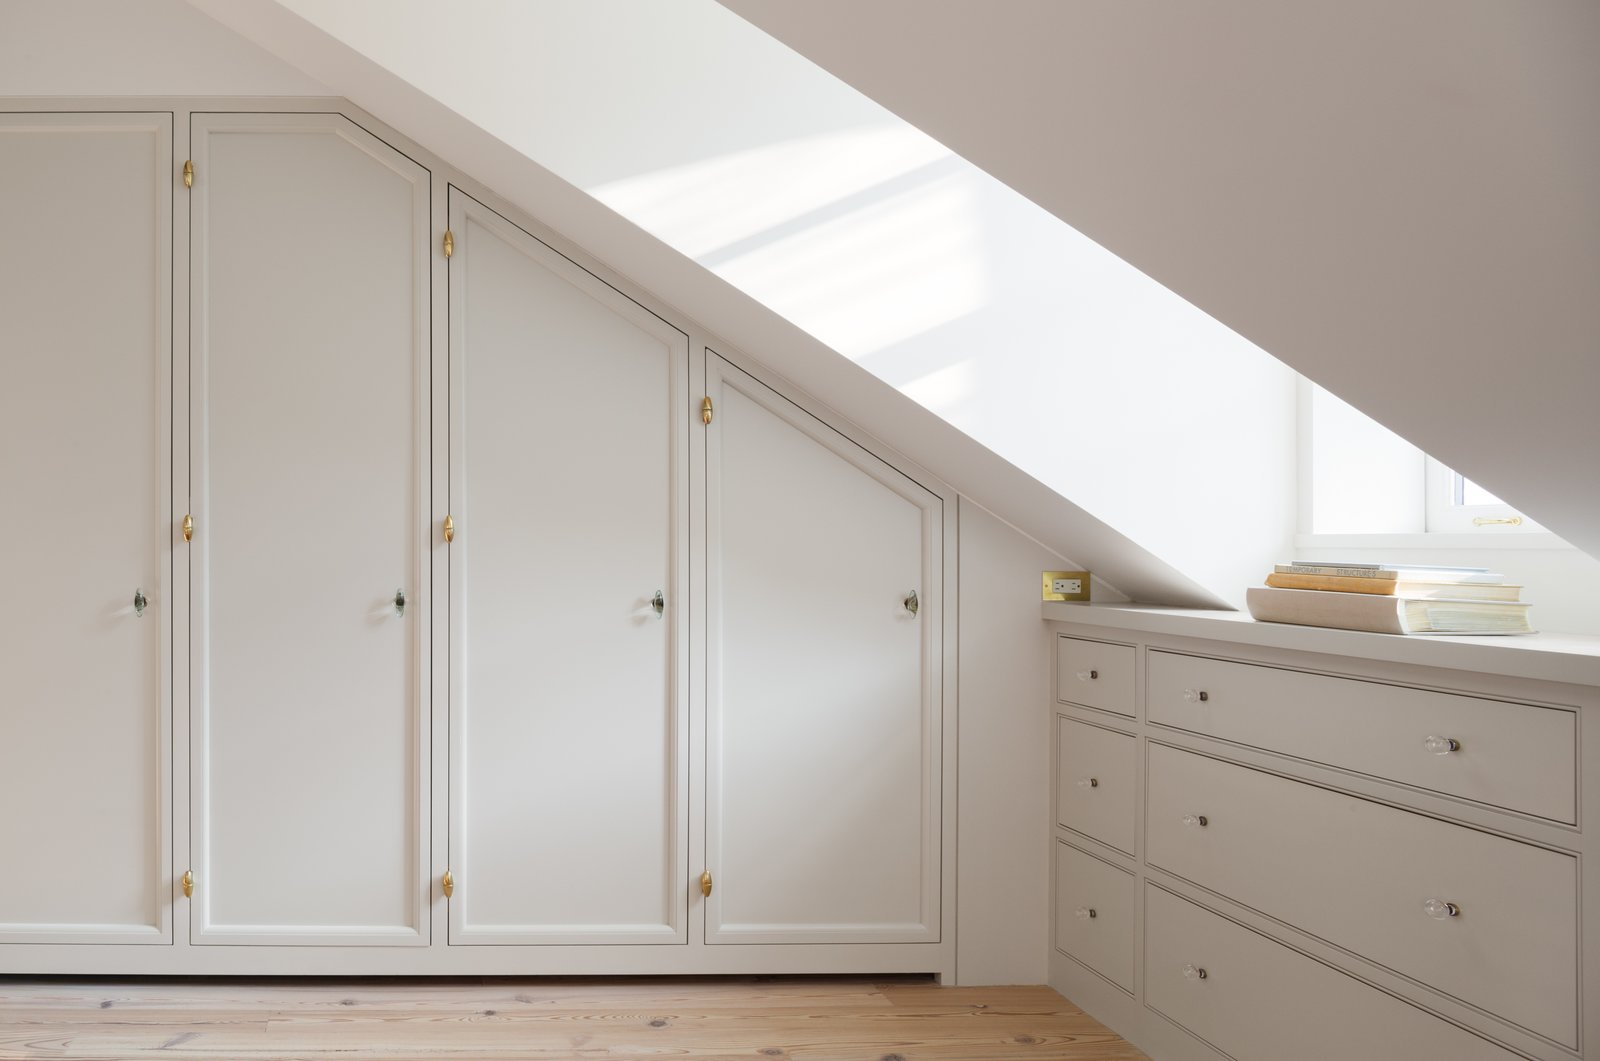 Custom millwork closets were added and lined with cedar and brass knobs that the owner found. Because of two dormers, the best use of space was to add drawers for additional storage.